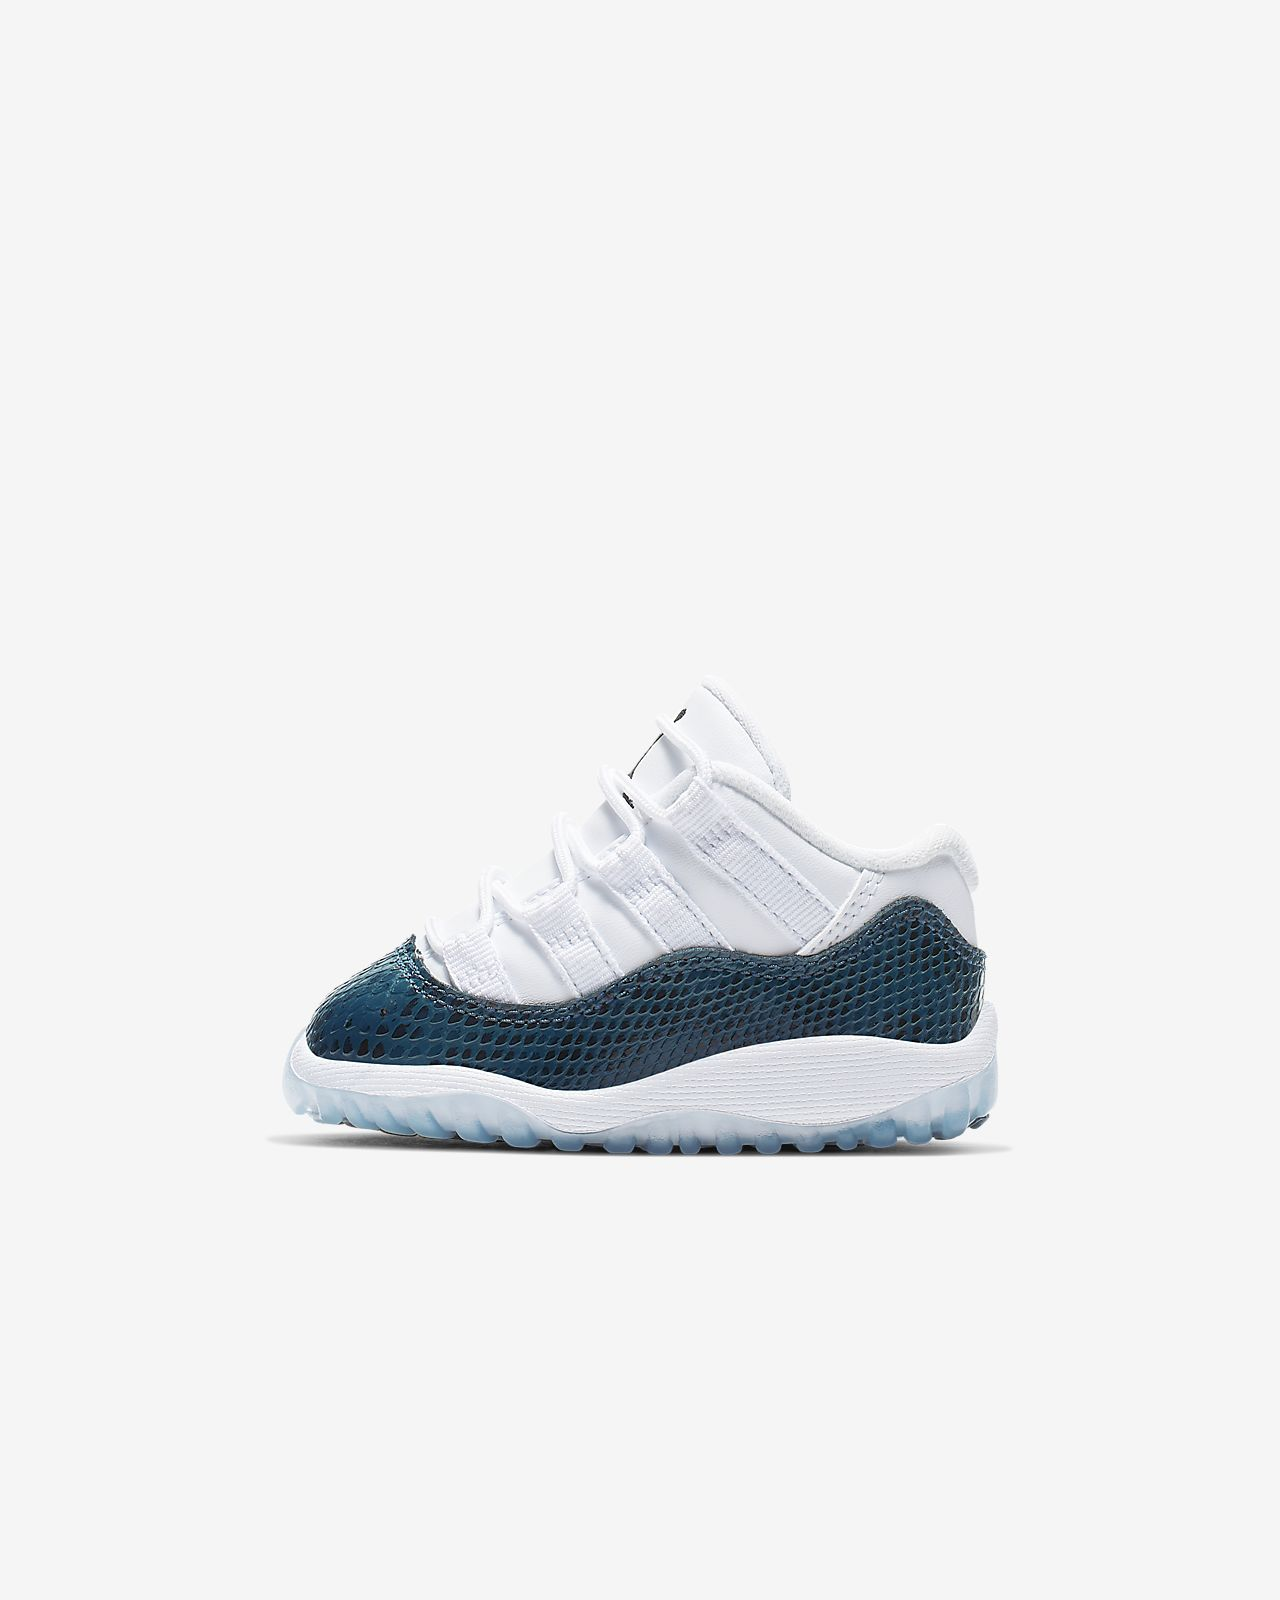 Jordan 11 Retro Low LE Baby/Toddler Shoe